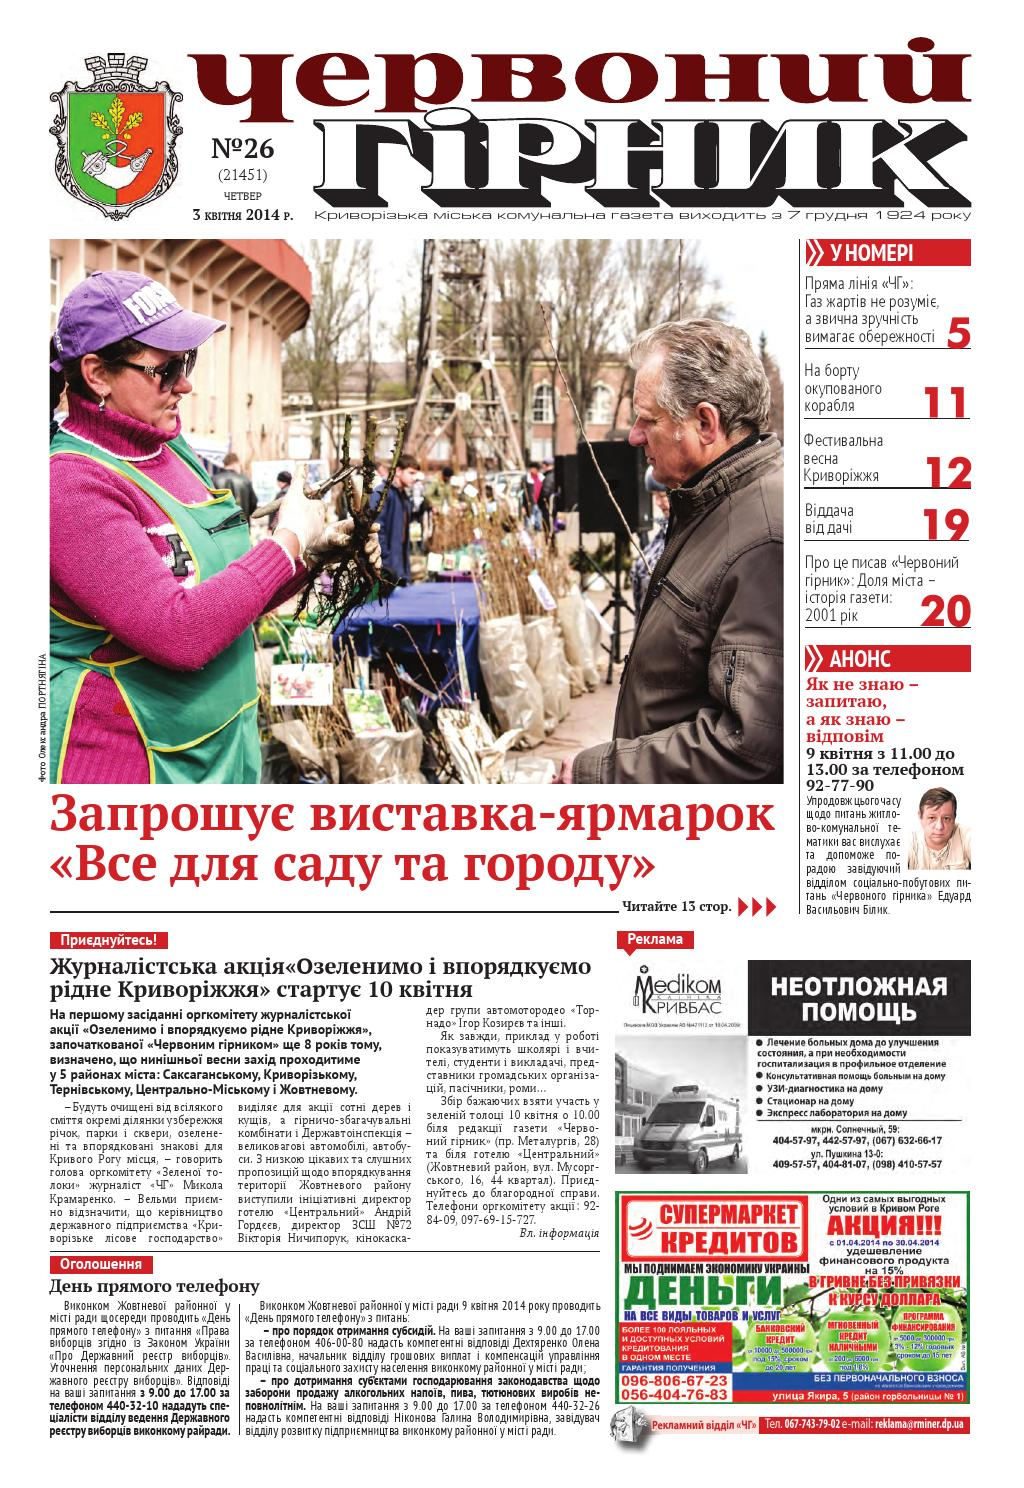 №26 (21451) 3 квітня 2014 by The newspaper